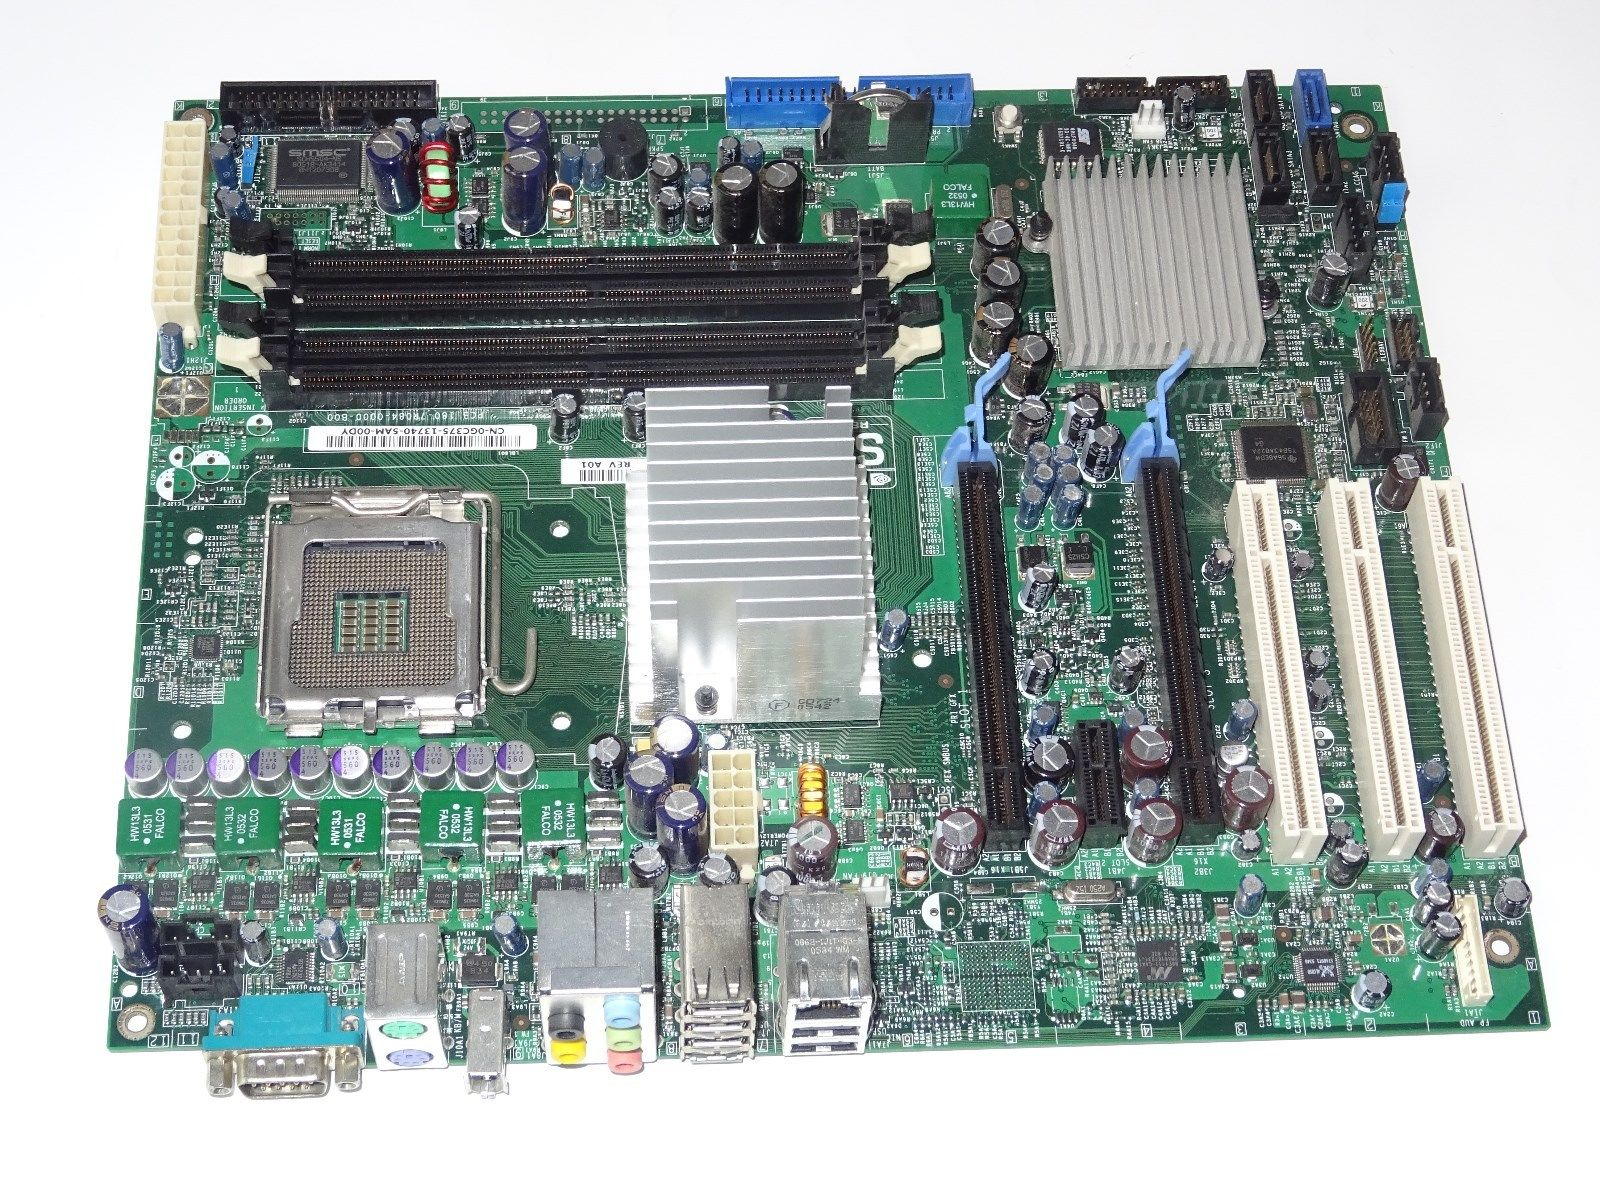 DELL XPS 600 CN-0GC375-13740 -5AM-00DY motherboard